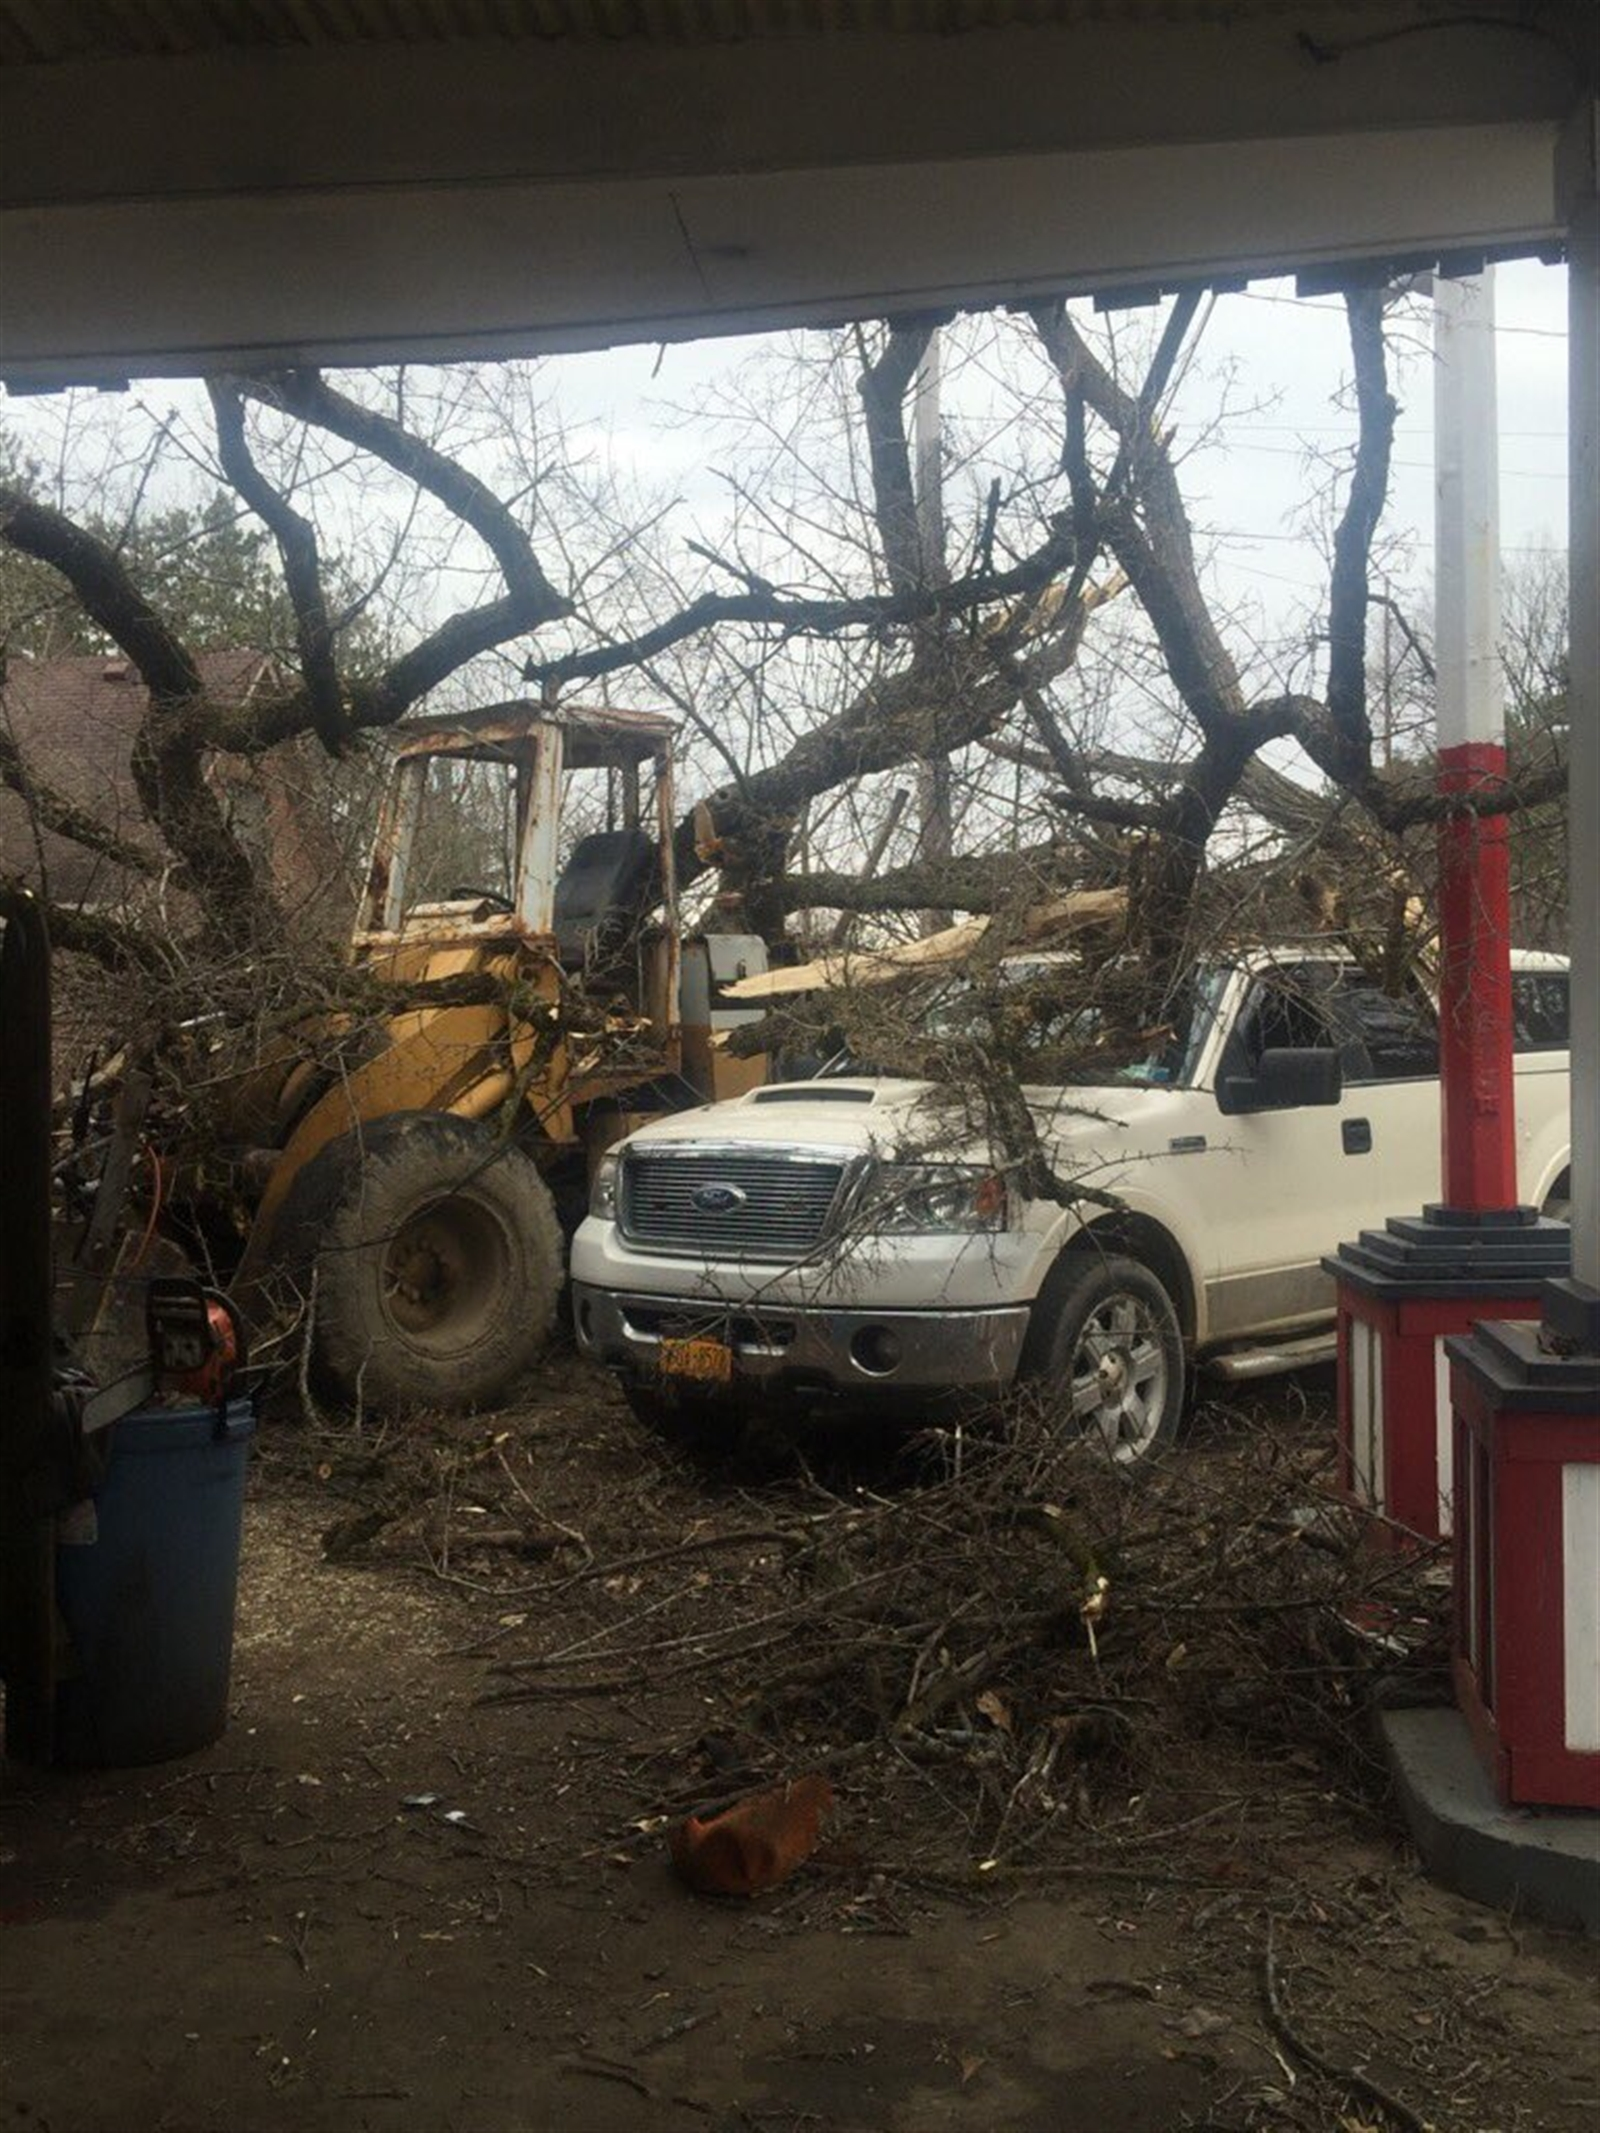 Double trouble at North Boston Garage on Boston State Road after toppled elm tree took out a front loader and F-150.